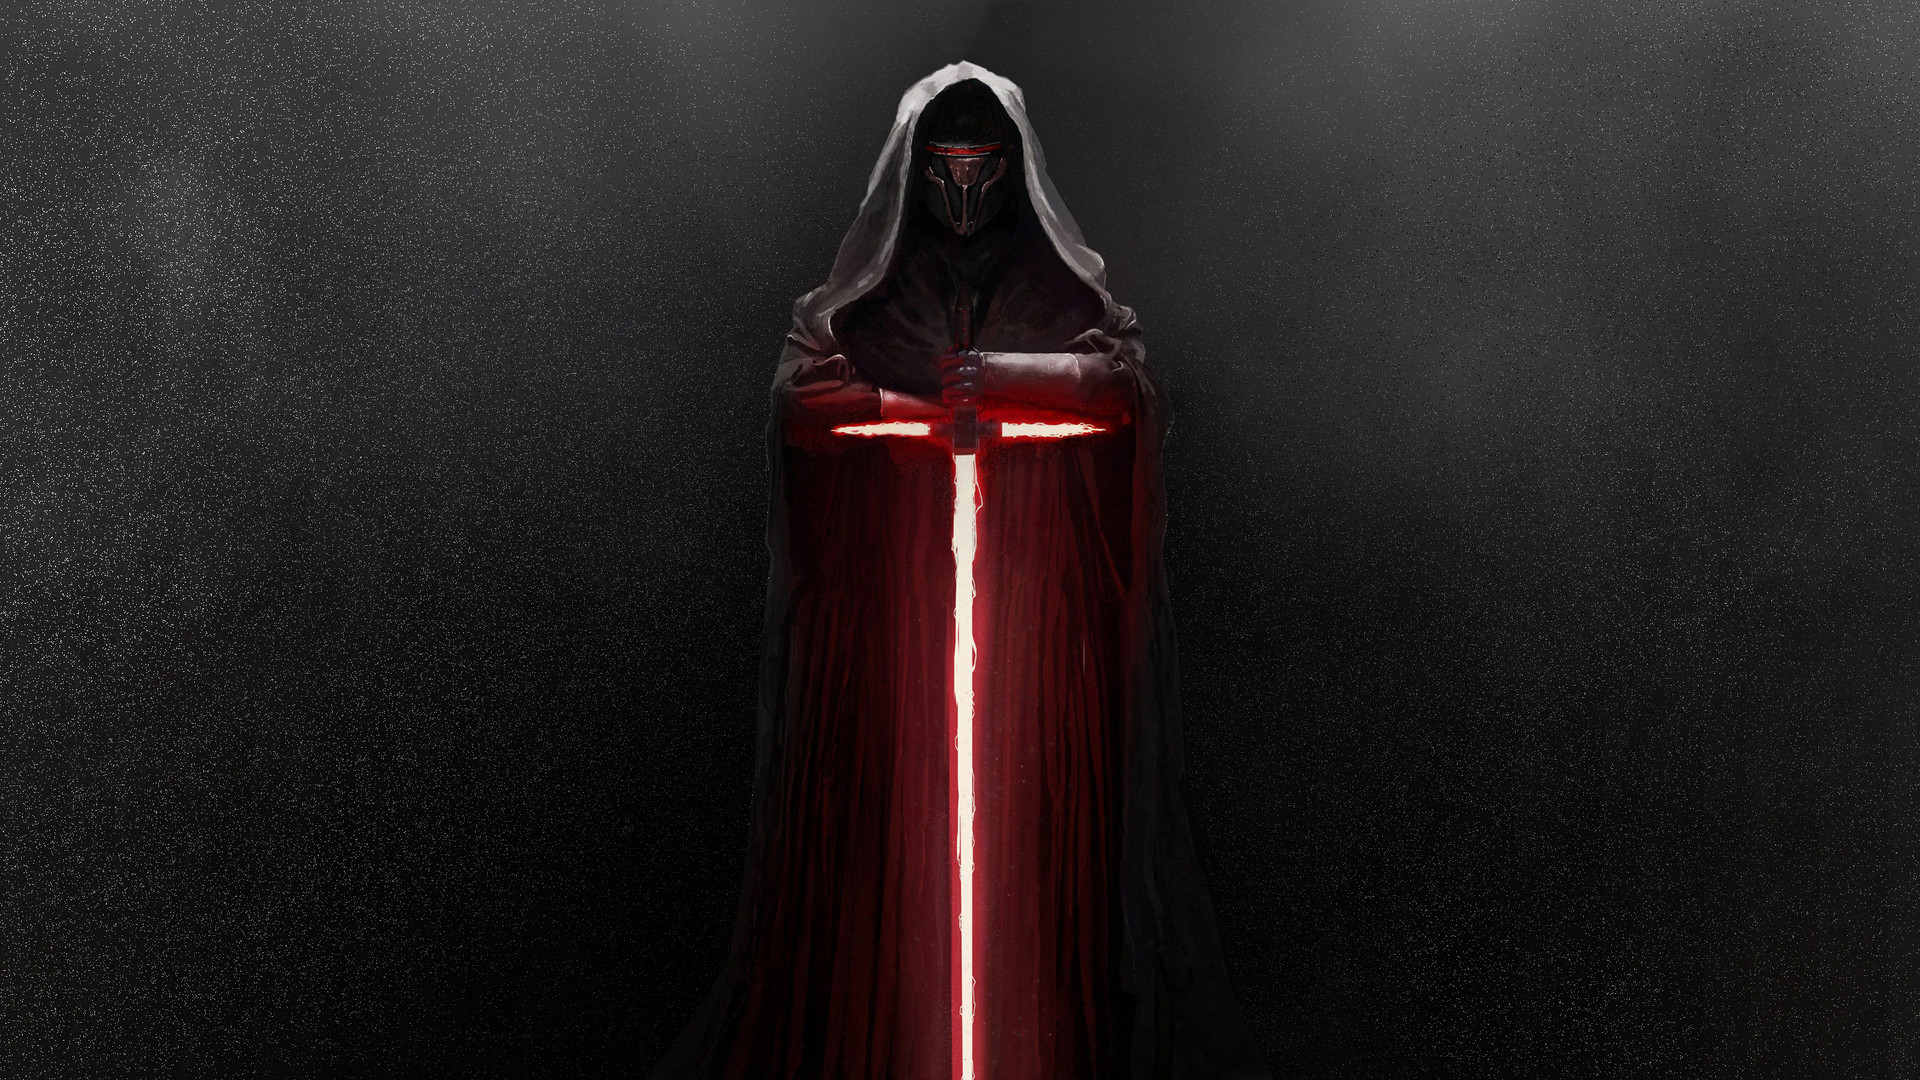 1920x1080 kylo-ren-lightsaber-star-wars-new.jpg